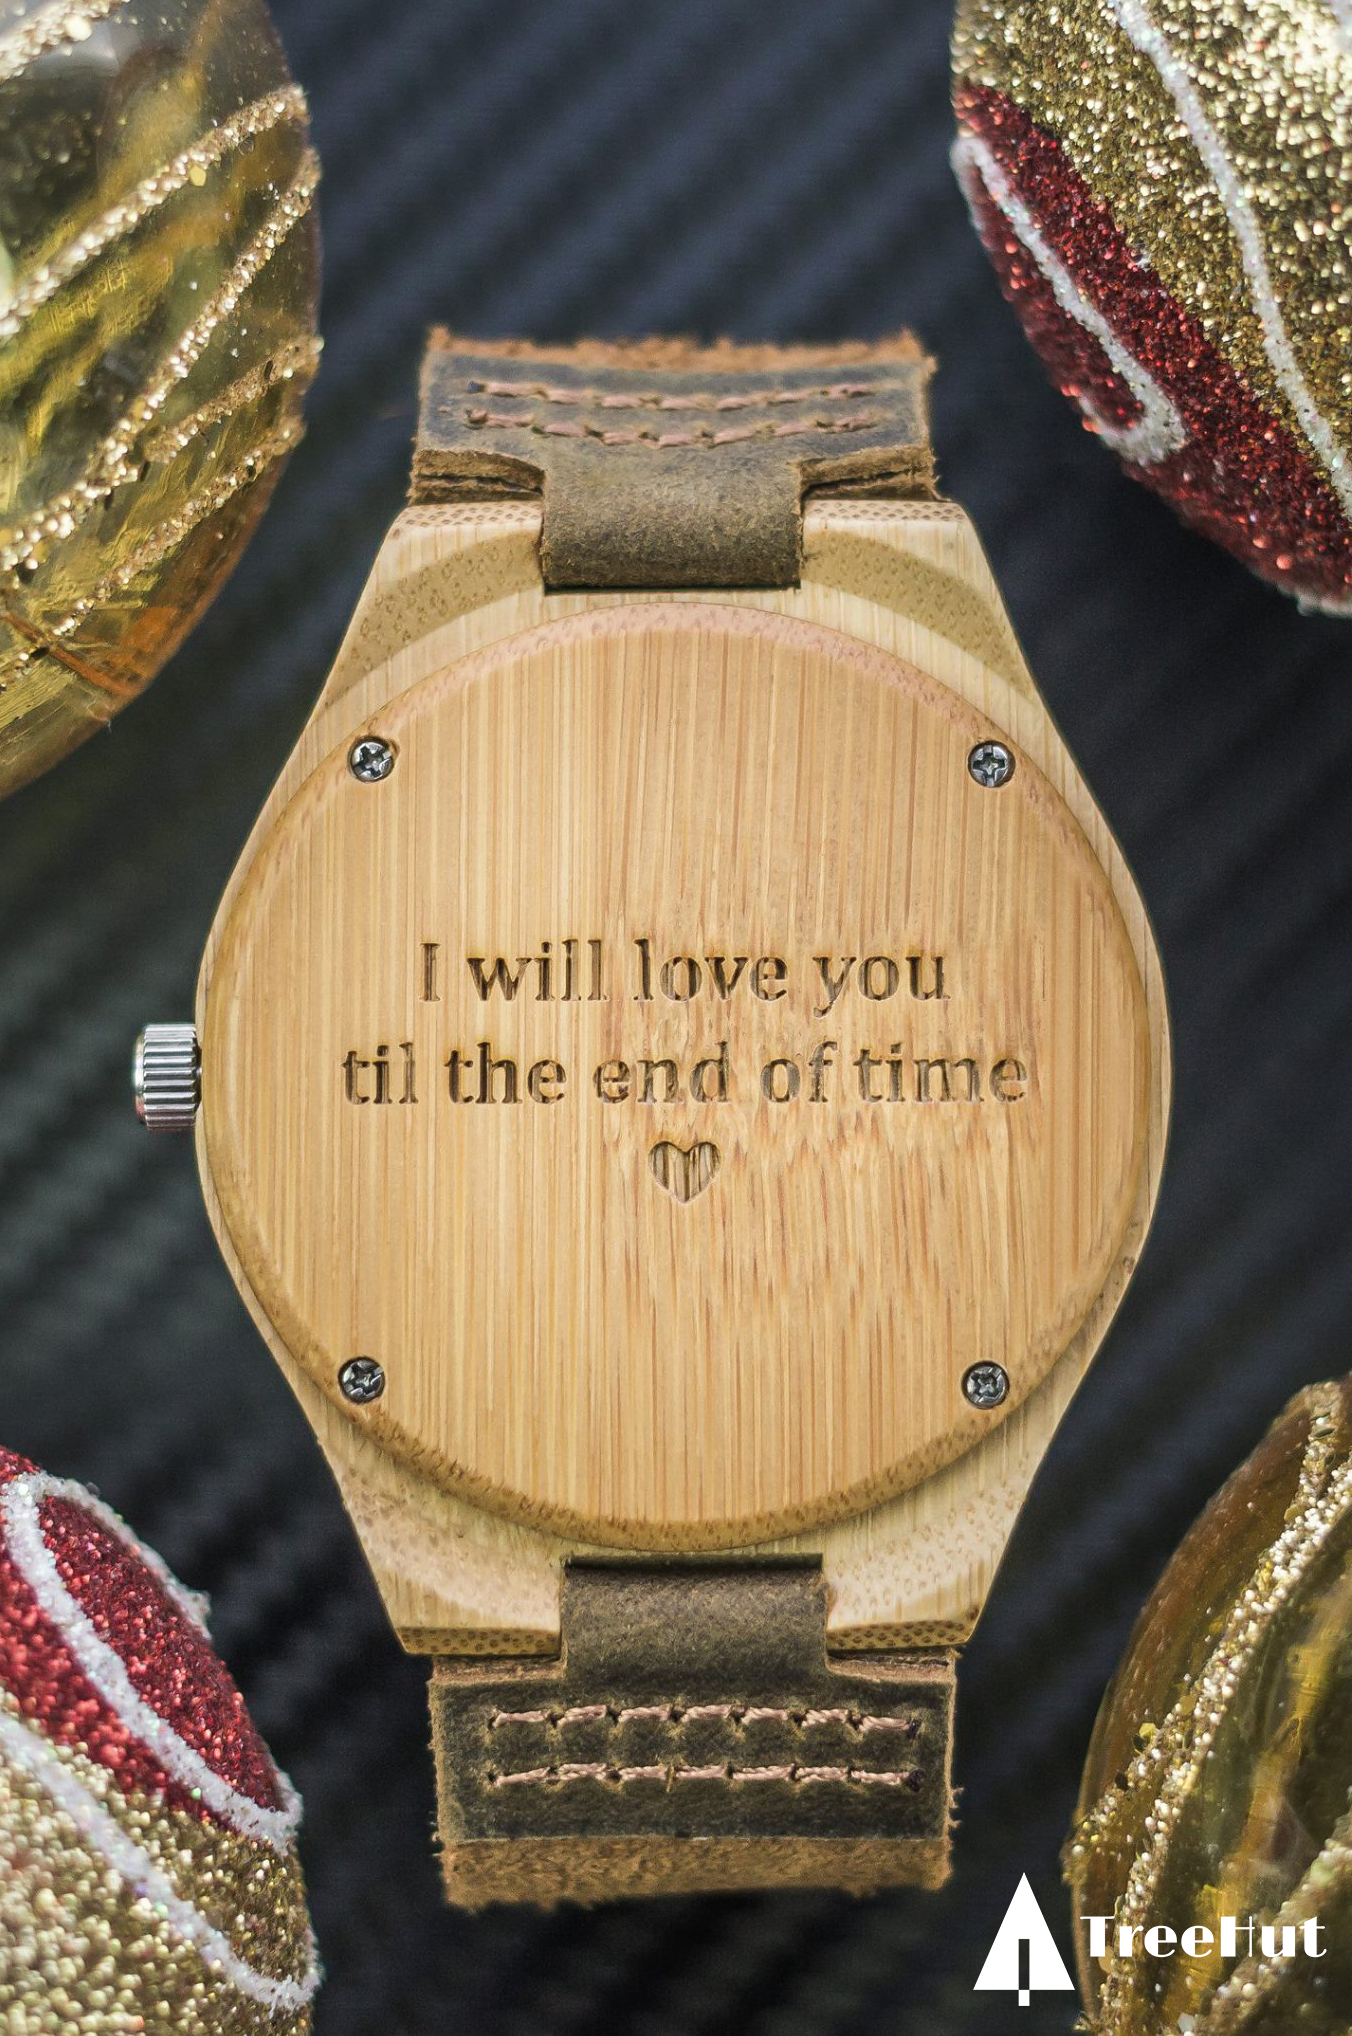 I Will Love You Till The End Of Time Christmas Lovequotes Engraving Woodwatch Treehutpath Treehut To My Future Husband Watch Engraving Future Gift